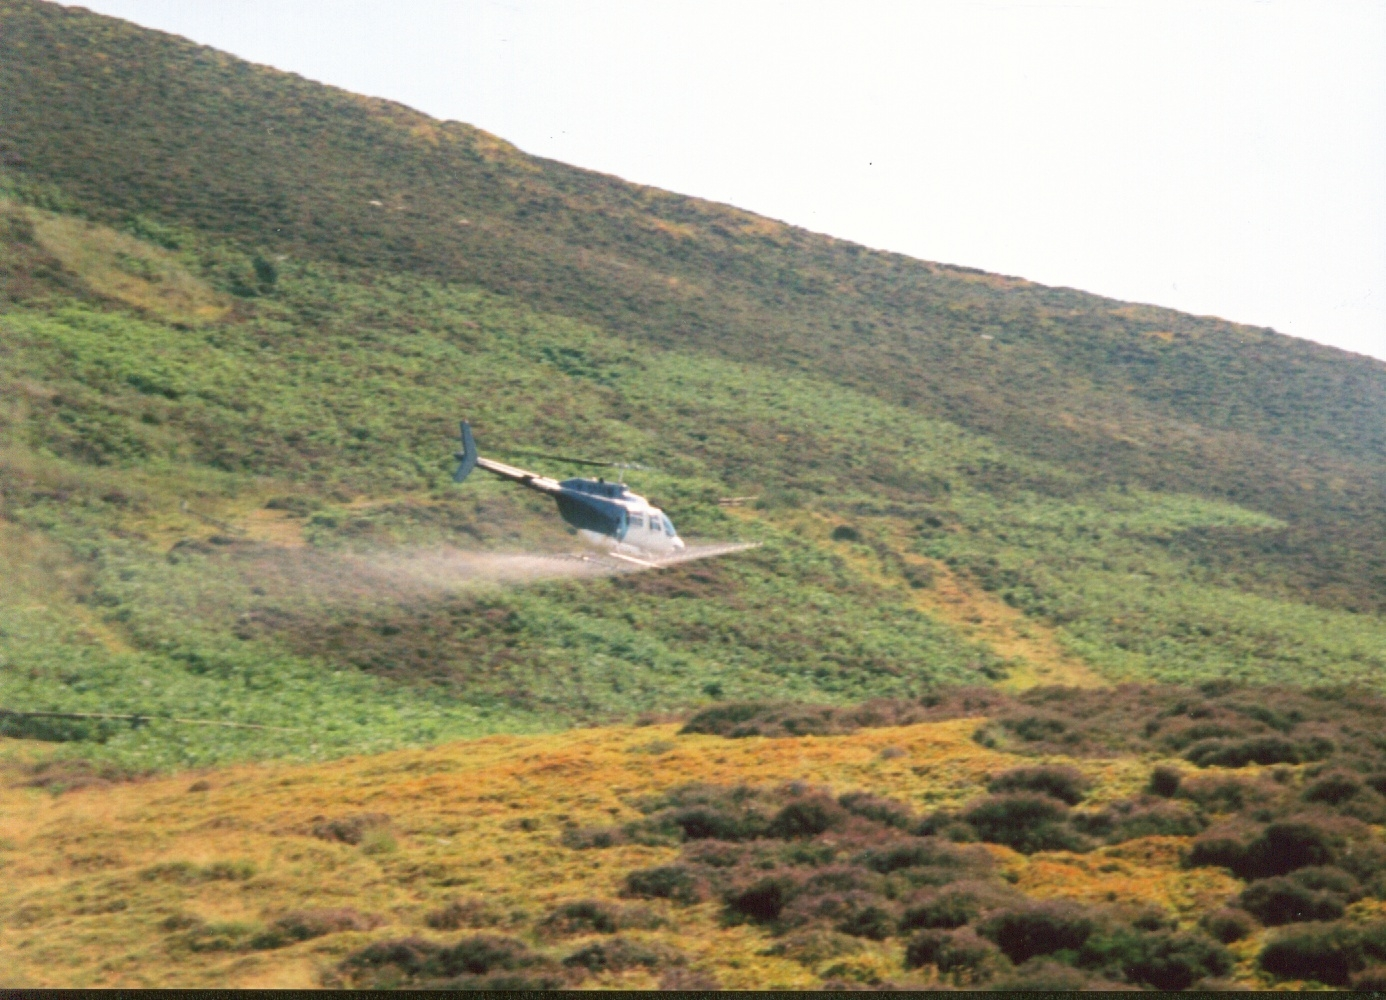 Bracken being sprayed on a remote mid Wales mountain pasture.